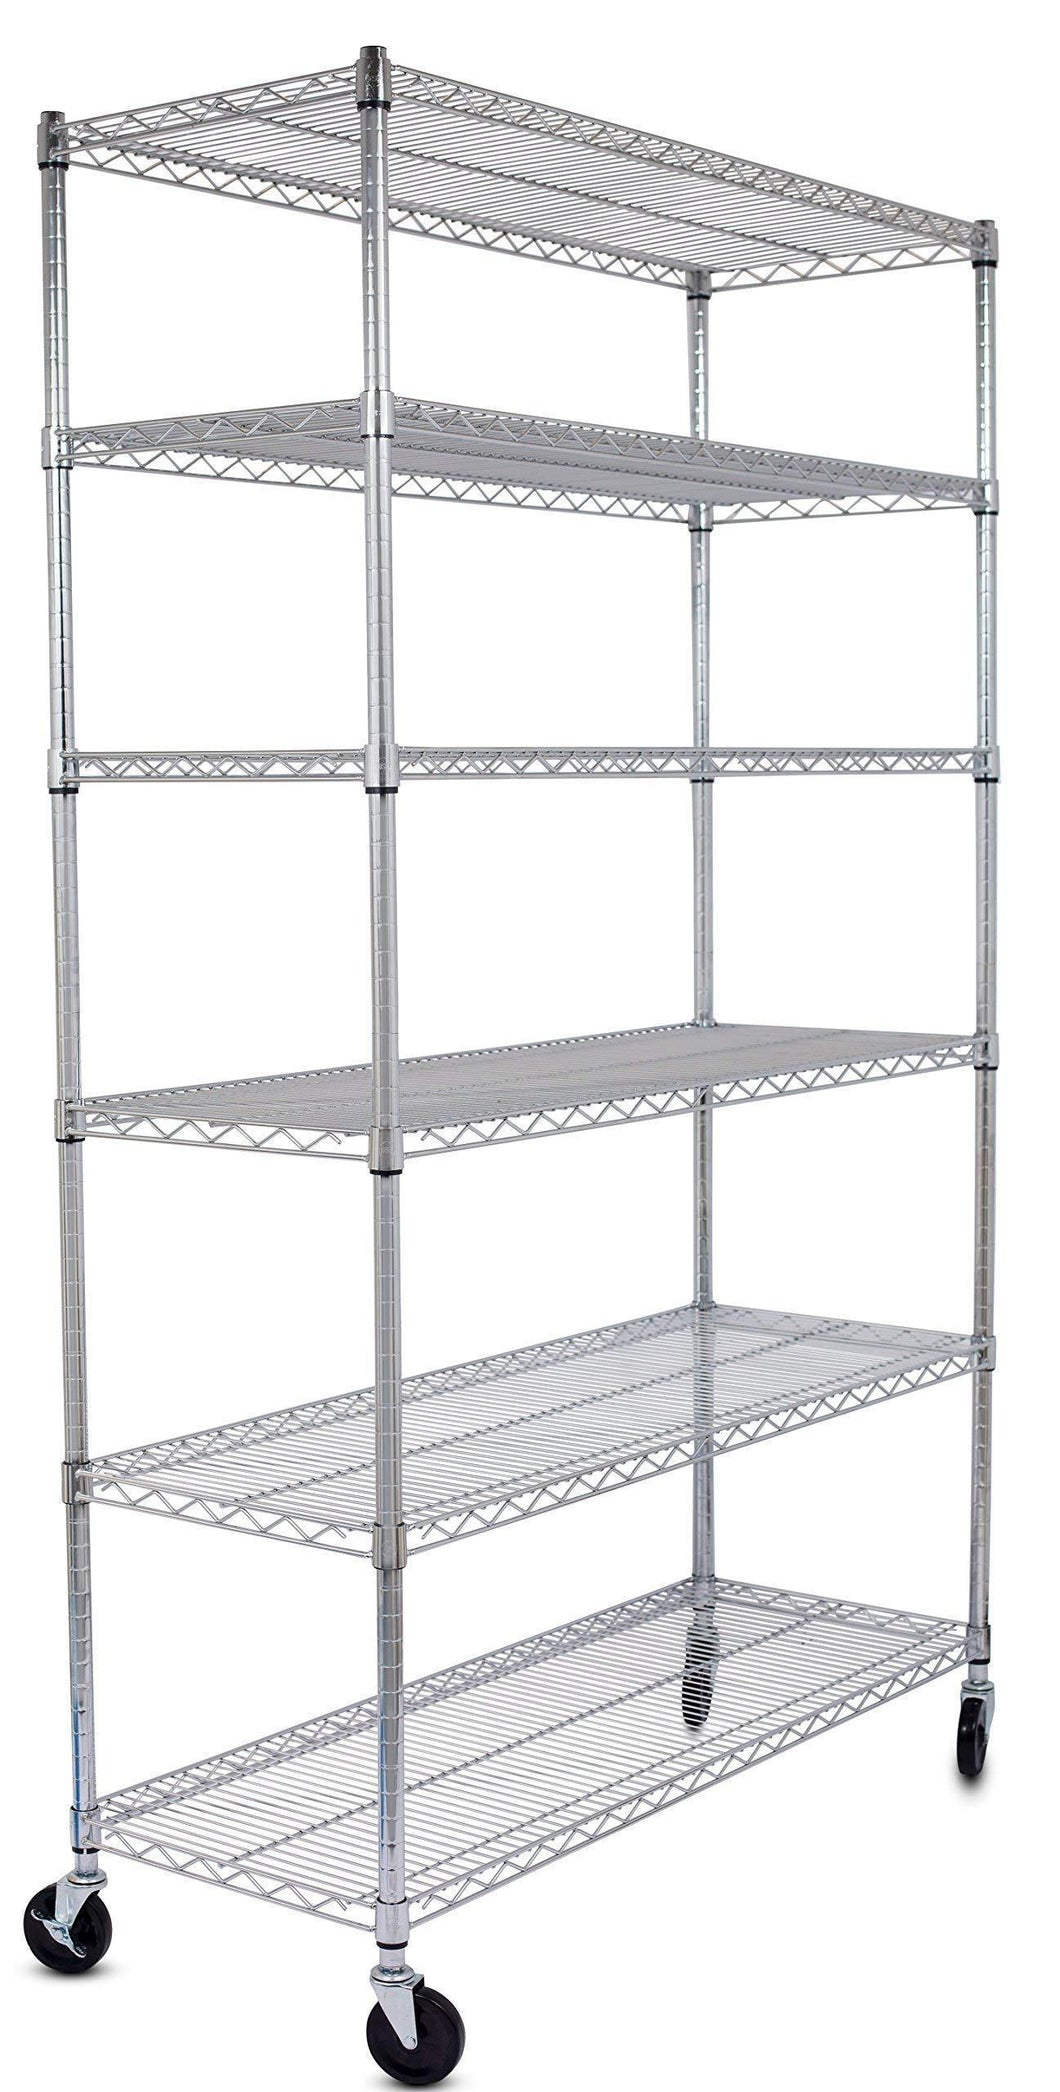 Related internets best 6 tier wire shelving chrome heavy duty shelf wide adjustable rack unit with locking wheels kitchen storage